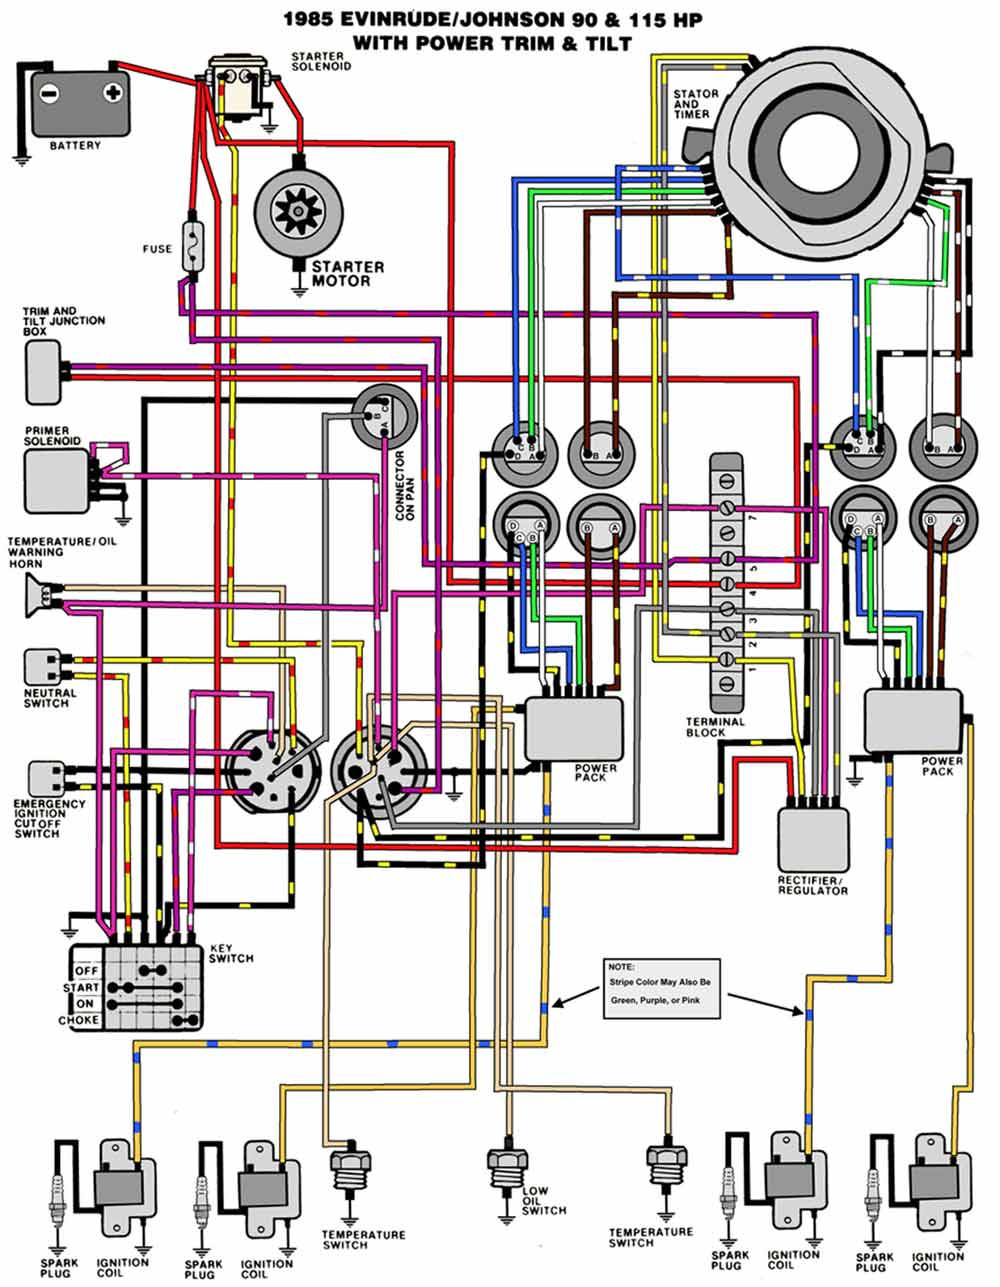 Johnson Outboard Wiring Schematics S Electric Omc Wiring Diagram 1972 Wiring Diagram How To Replace A Shifter And Cables Powerboat Tv 1965 Johnson Sea Horse 75 Hp 90 Hp Electiric Shift 1977